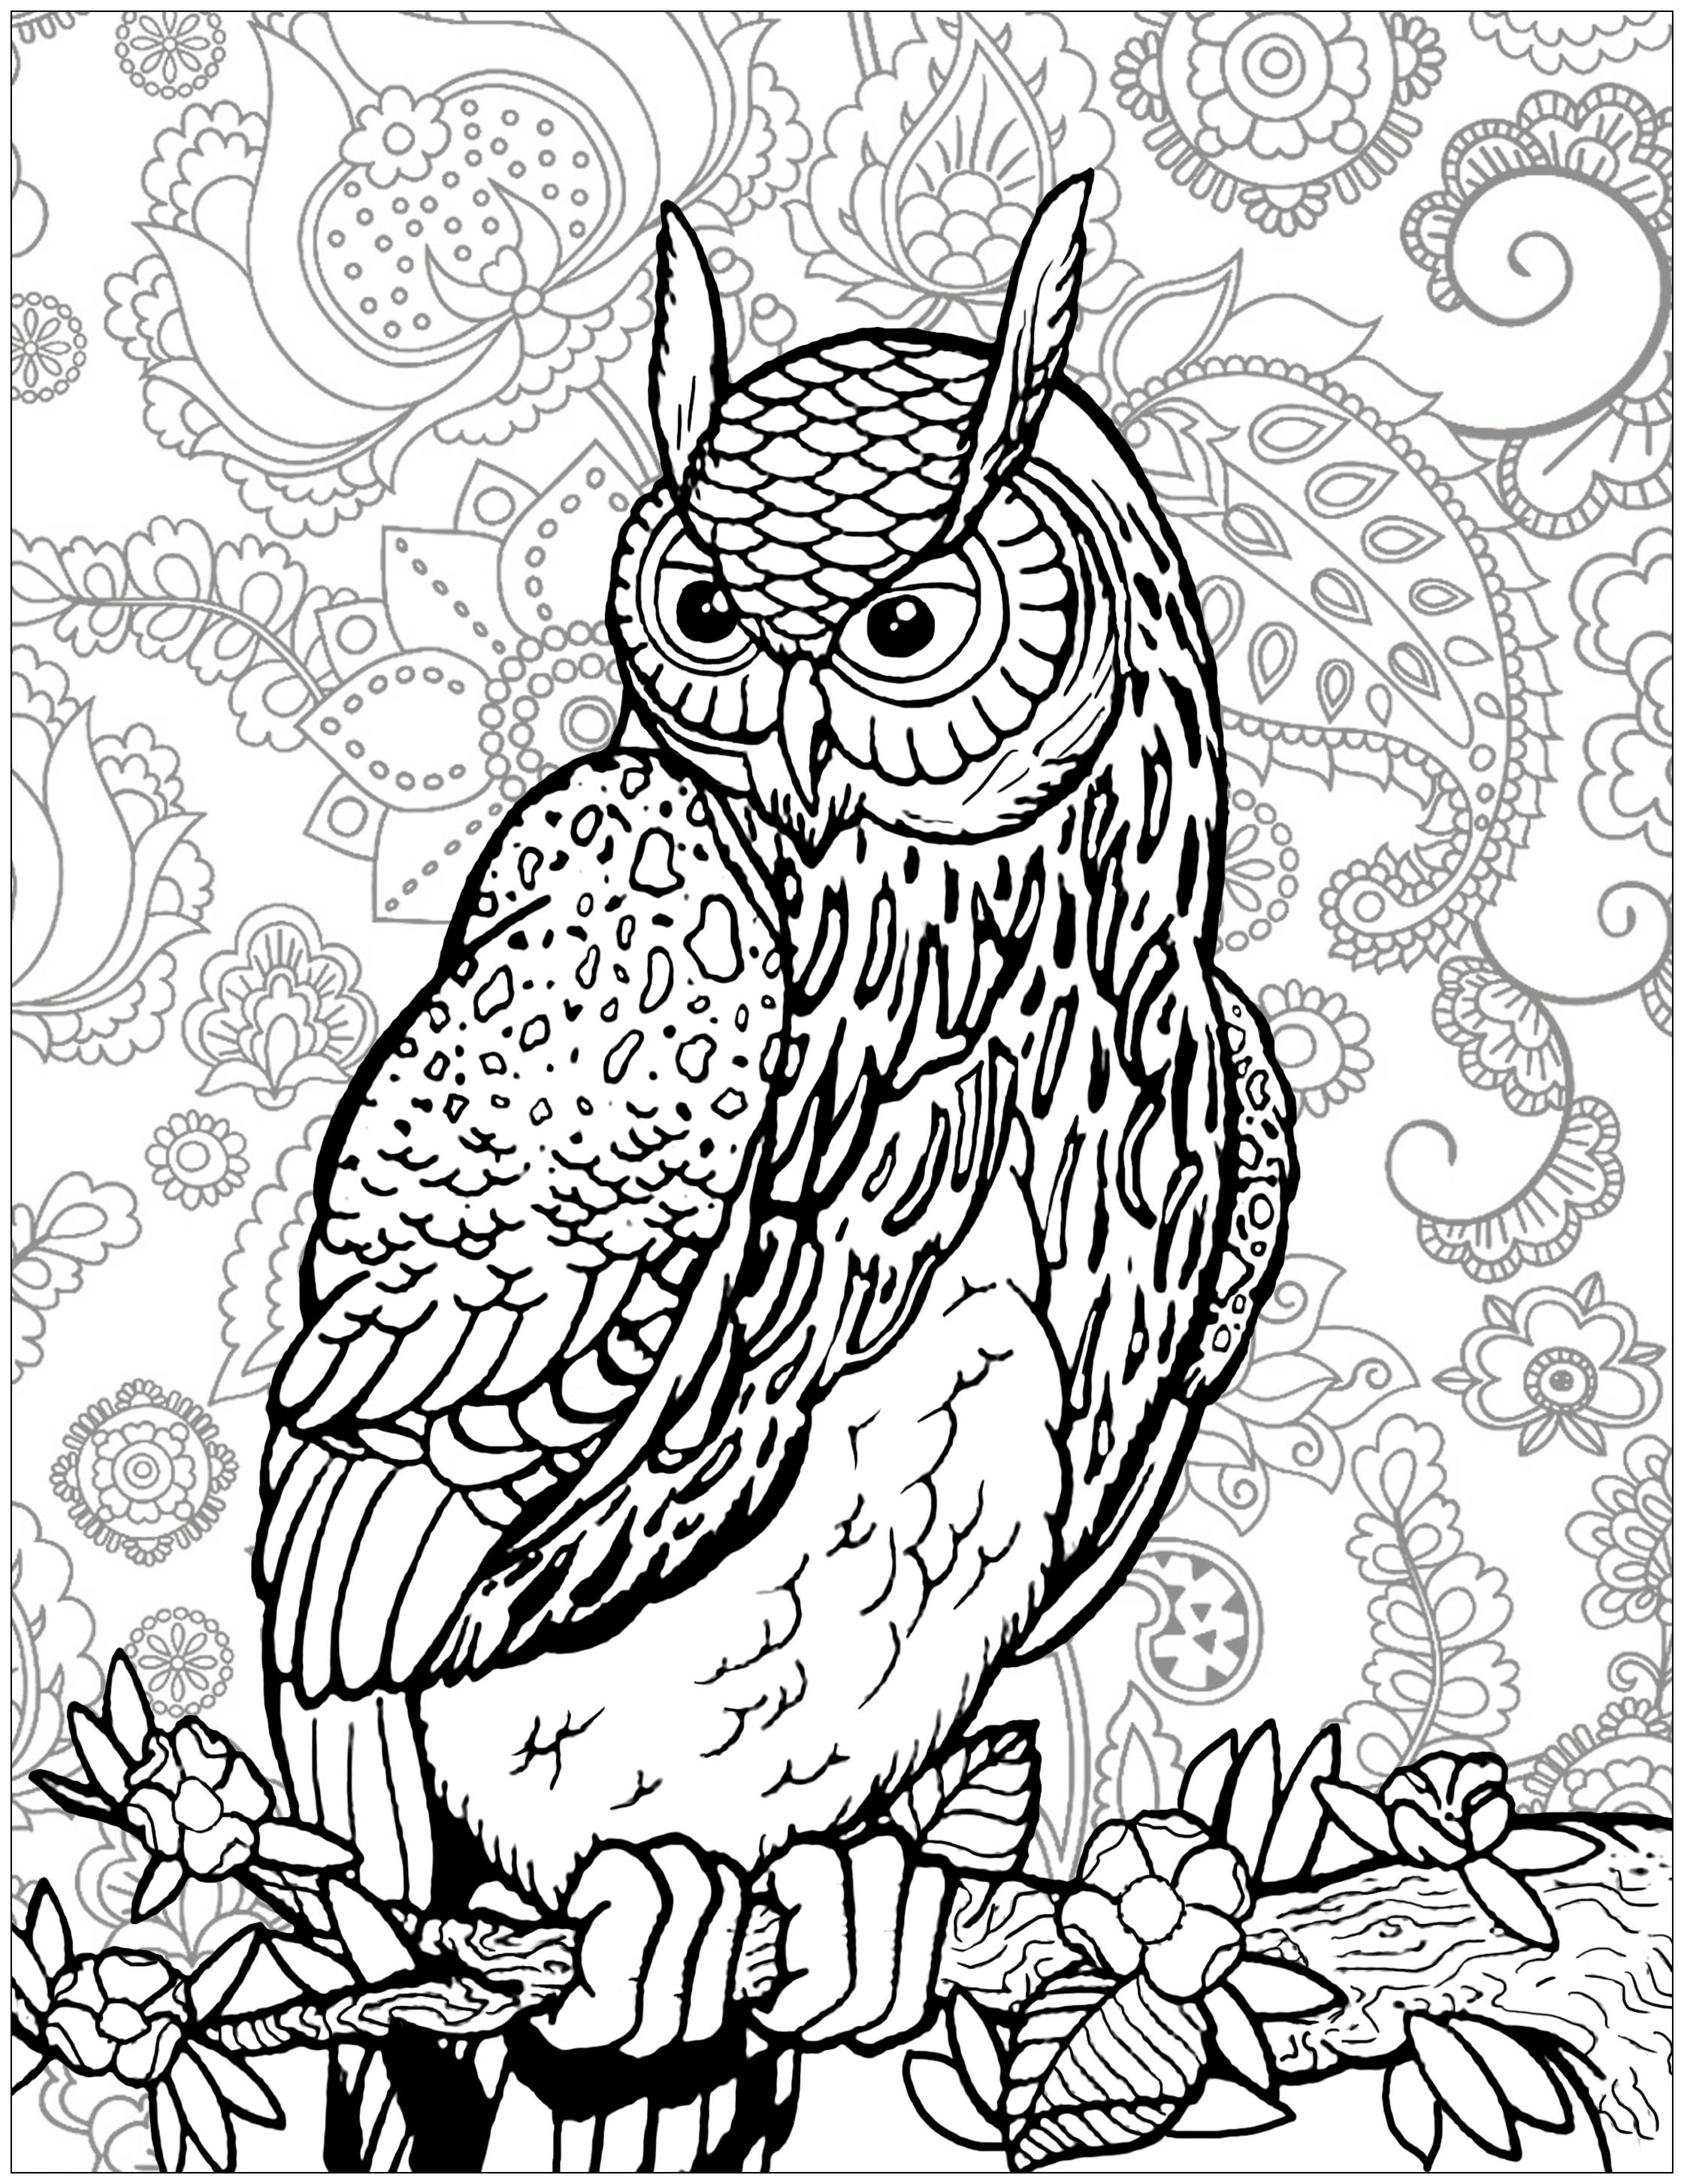 Coloring owl on tree branch background